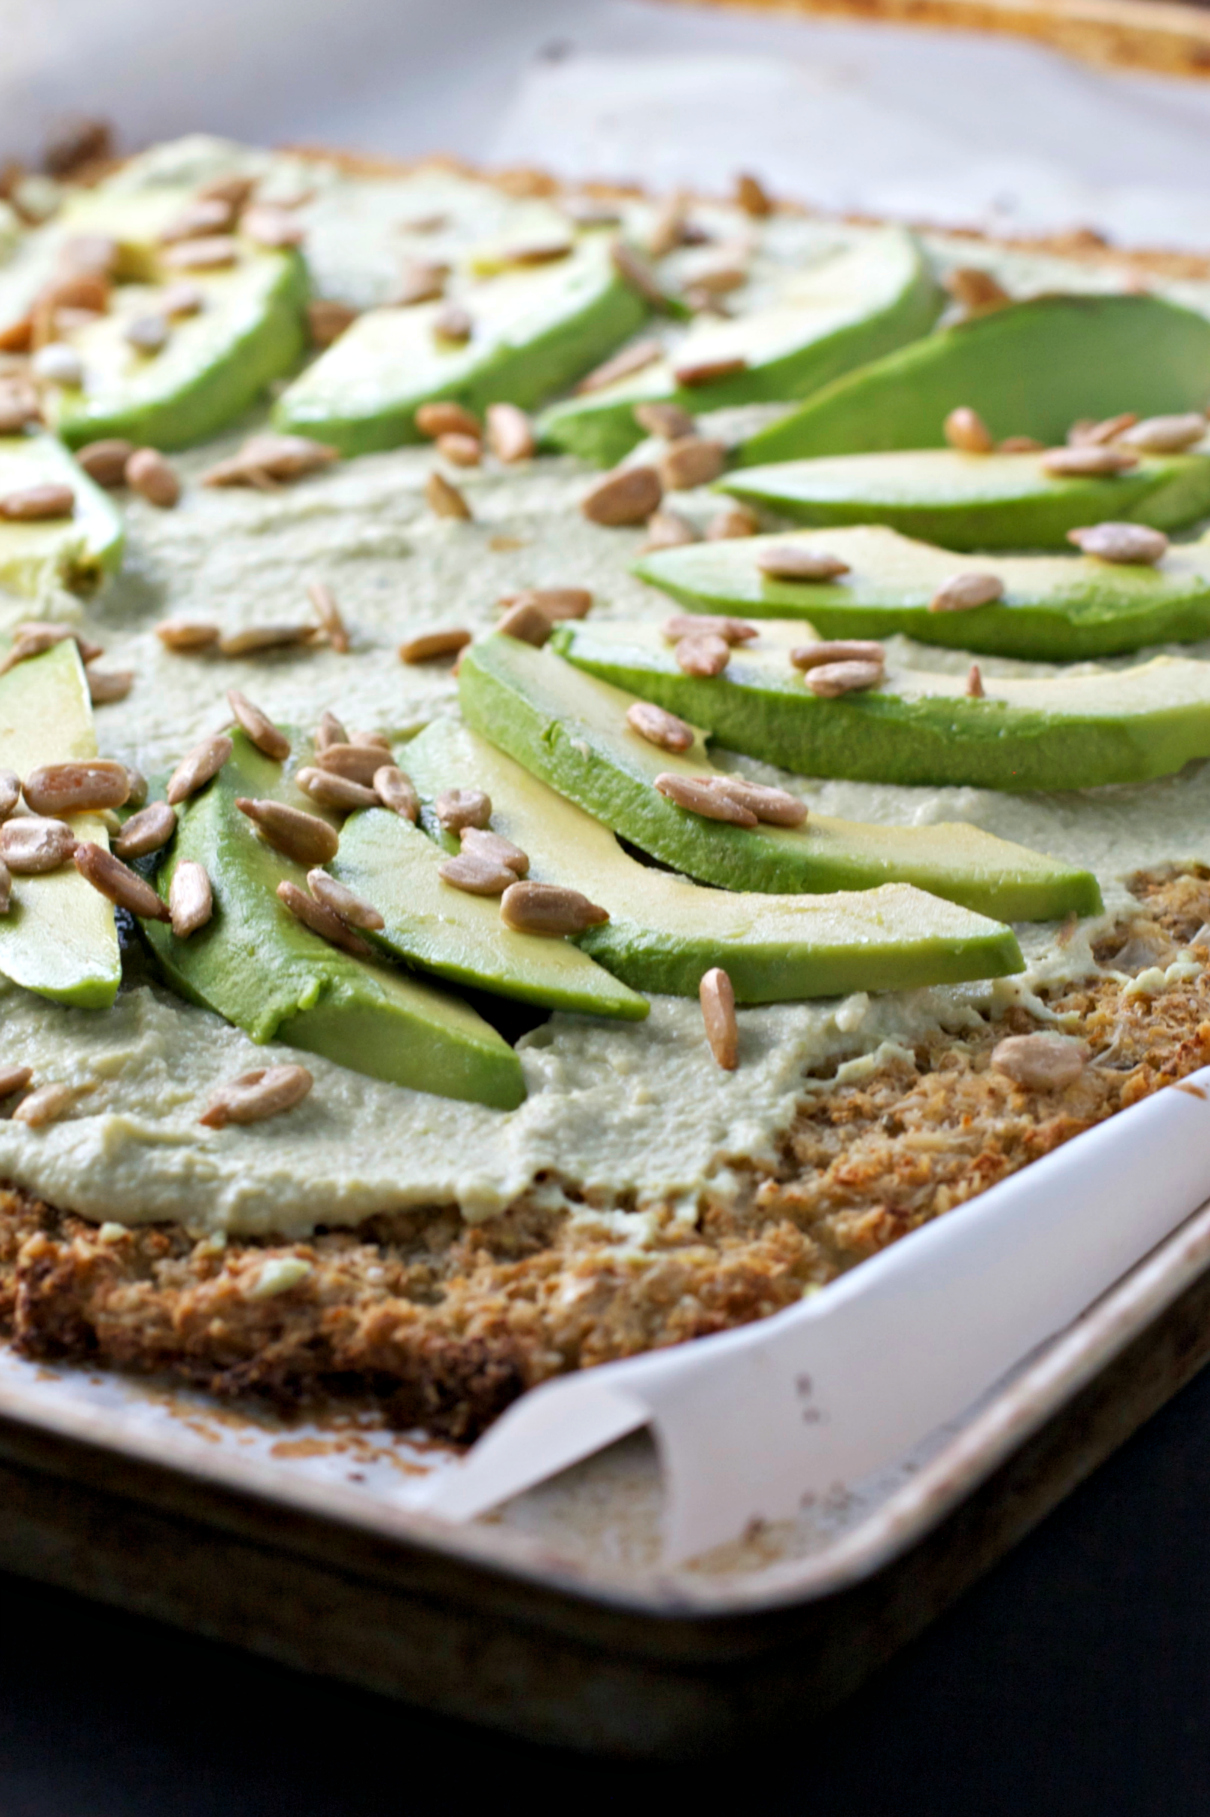 Rosemary Cauliflower Flatbread with Hummus and Avocados ~gluten free/vegan~